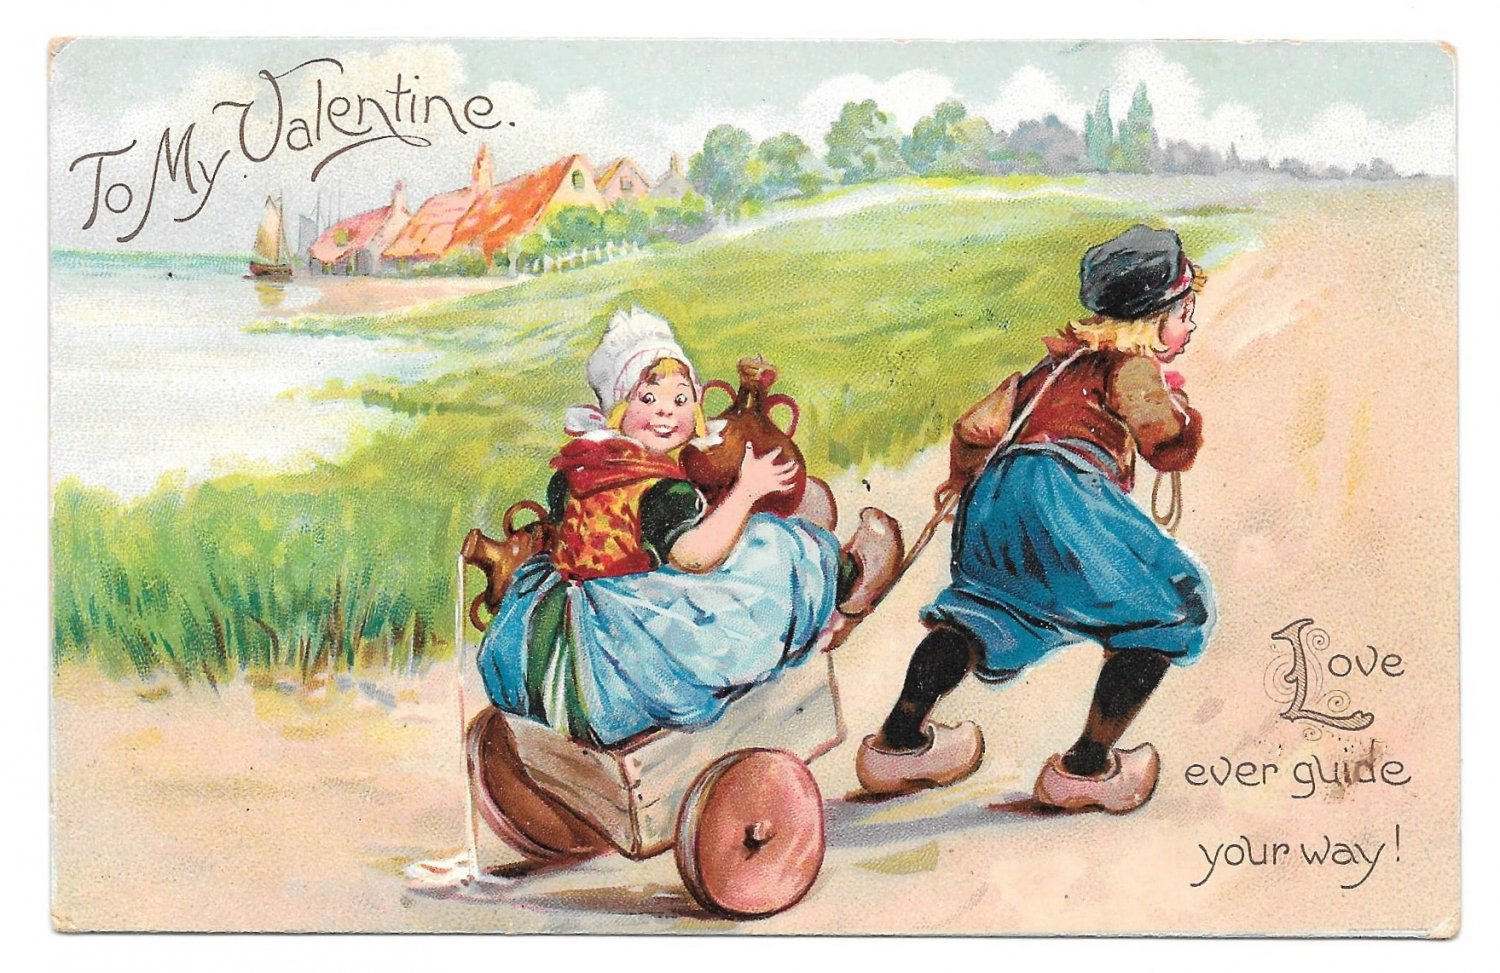 Tuck Valentine Dutch Boy Pulling Girl Carrying Jugs in Cart Vintage UDB Postcard